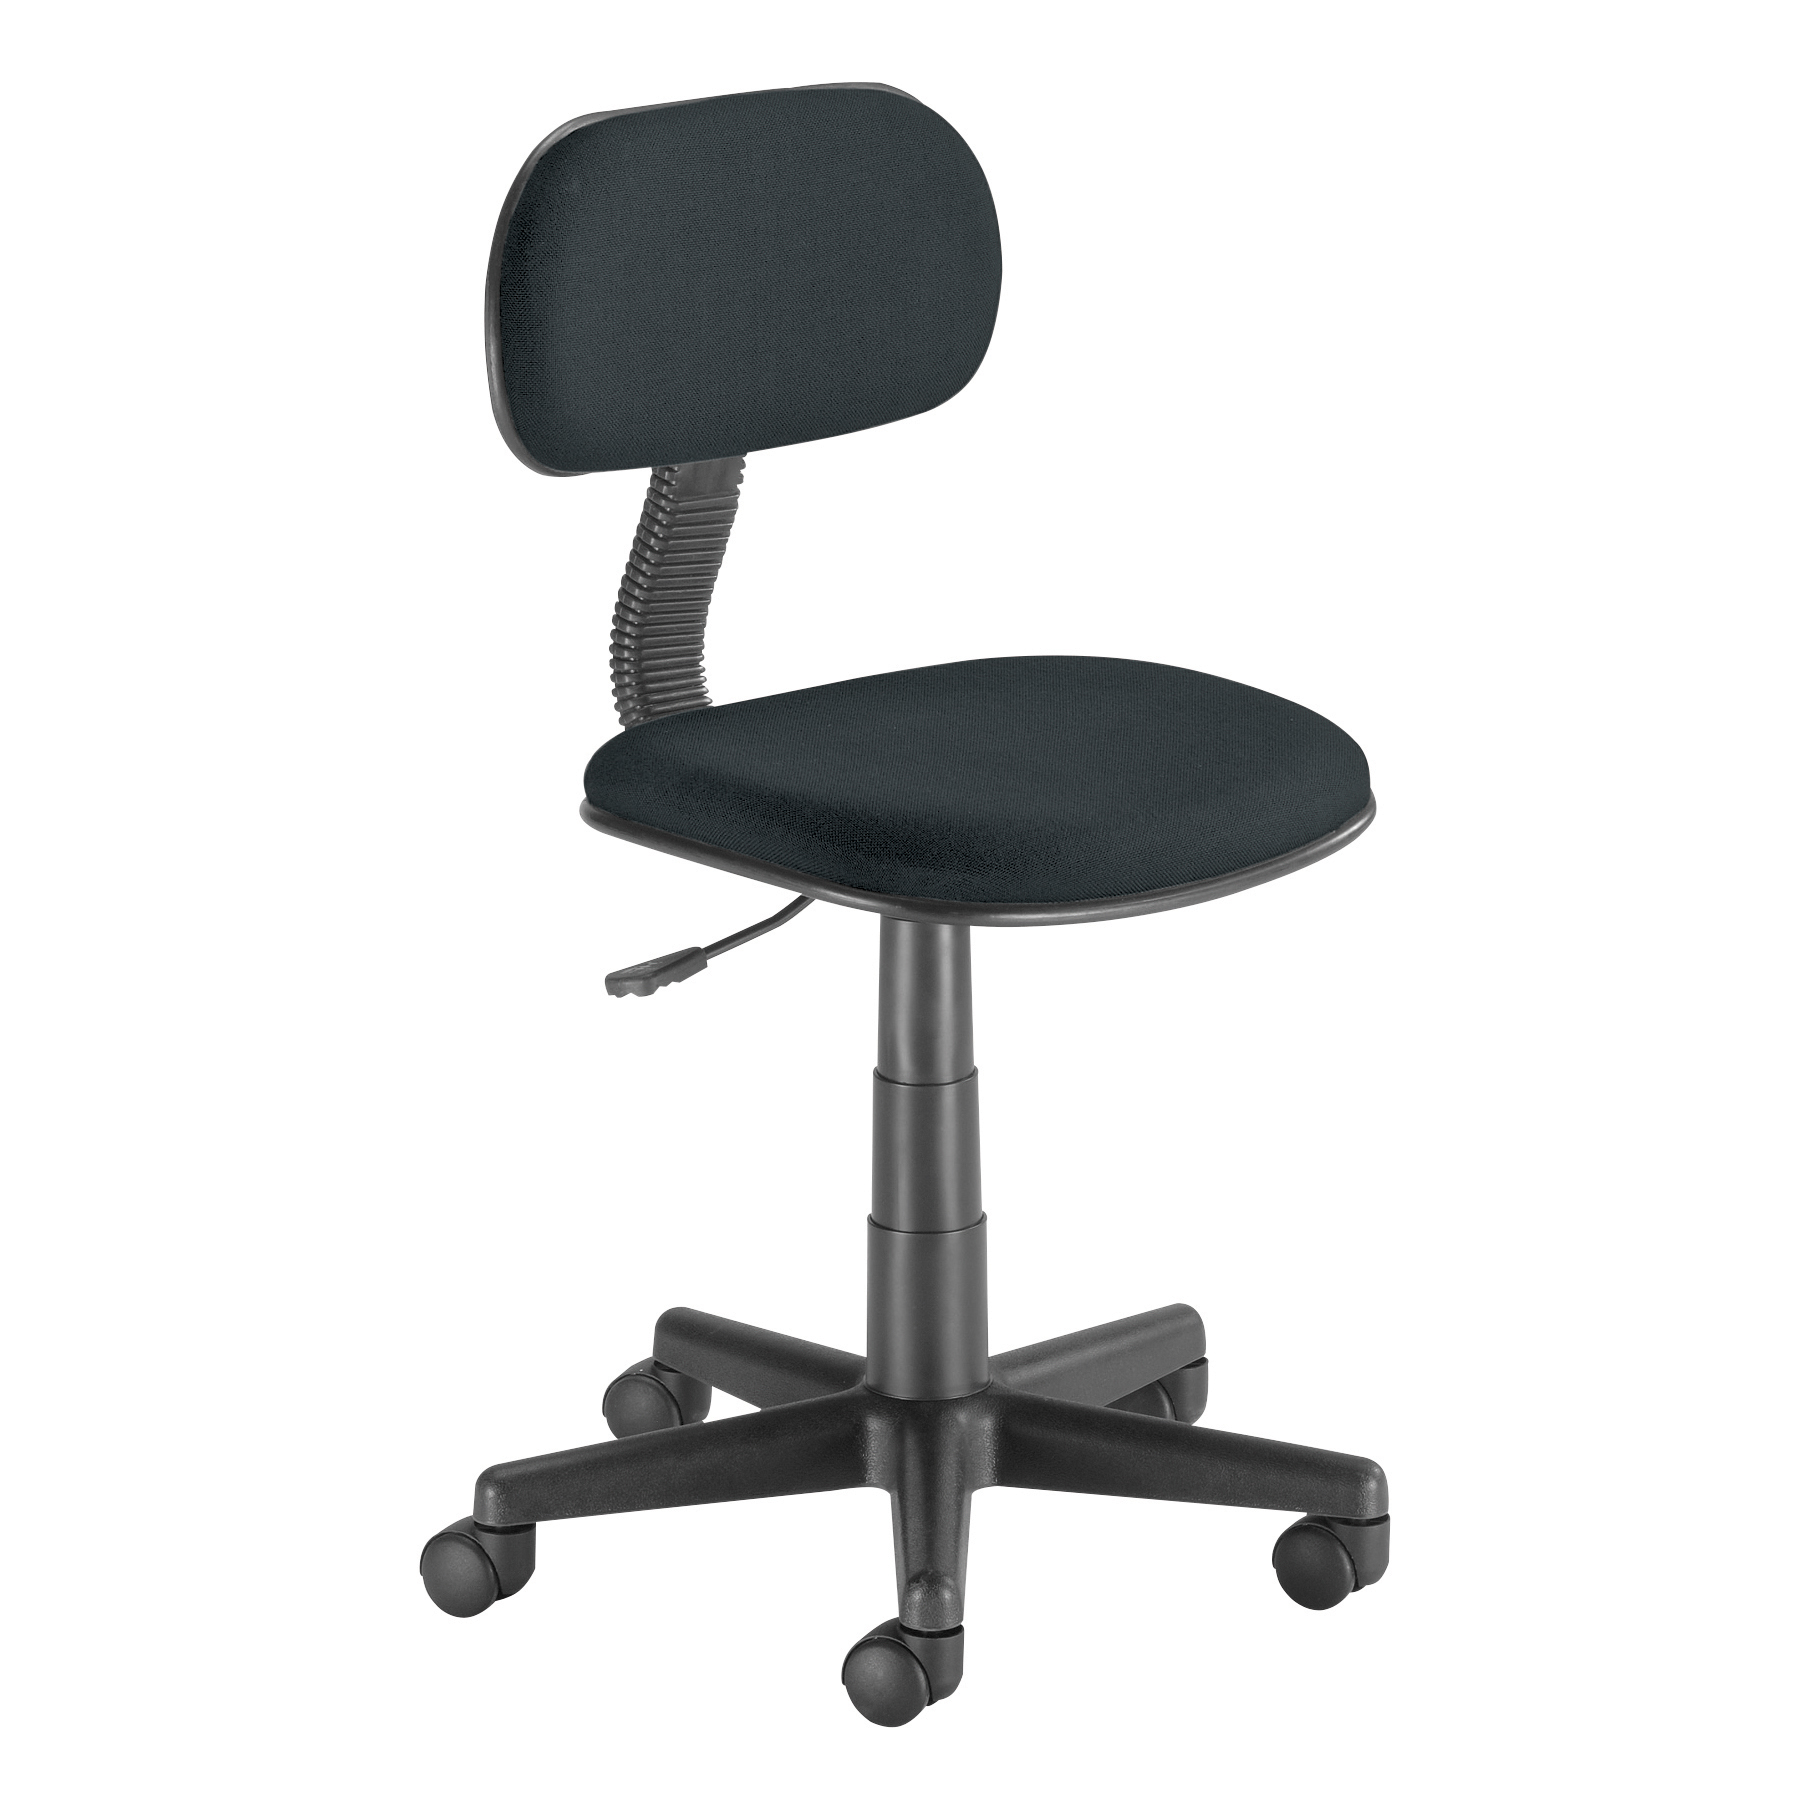 Trexus Intro Typist Chair Charcoal 410x450x405-520mm Ref 10001-03Charcoal